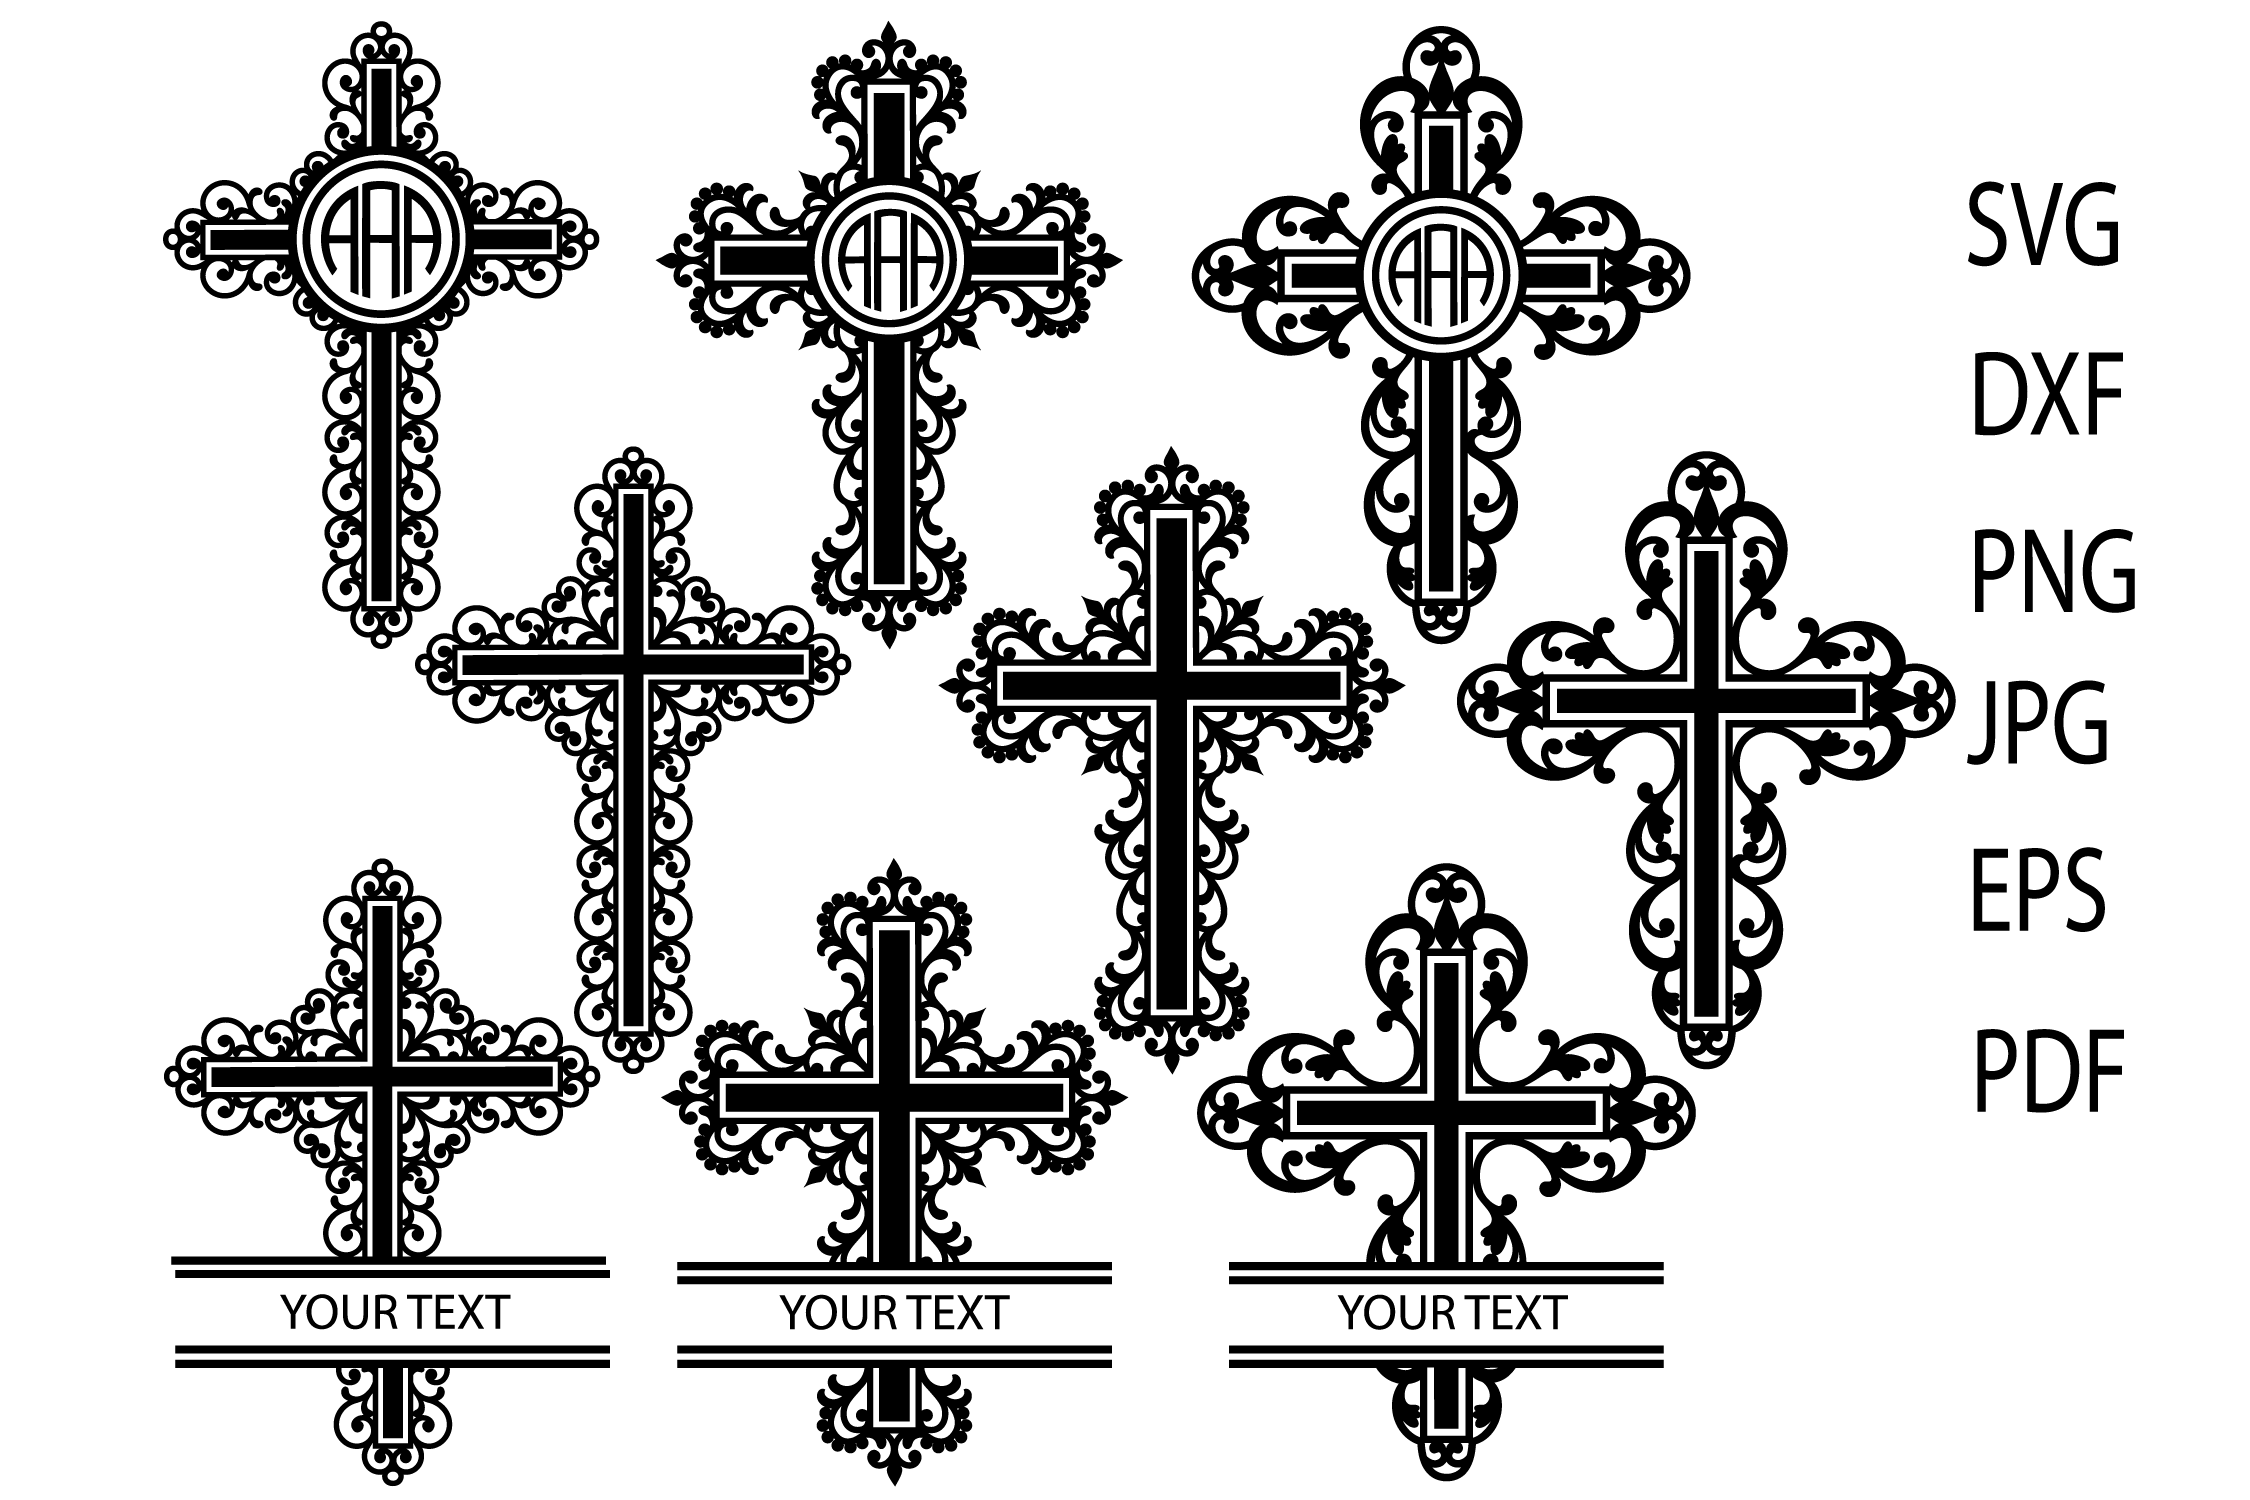 Download Free Filigree Cross Svg Cross Monogram Frames Graphic By Yulnniya for Cricut Explore, Silhouette and other cutting machines.